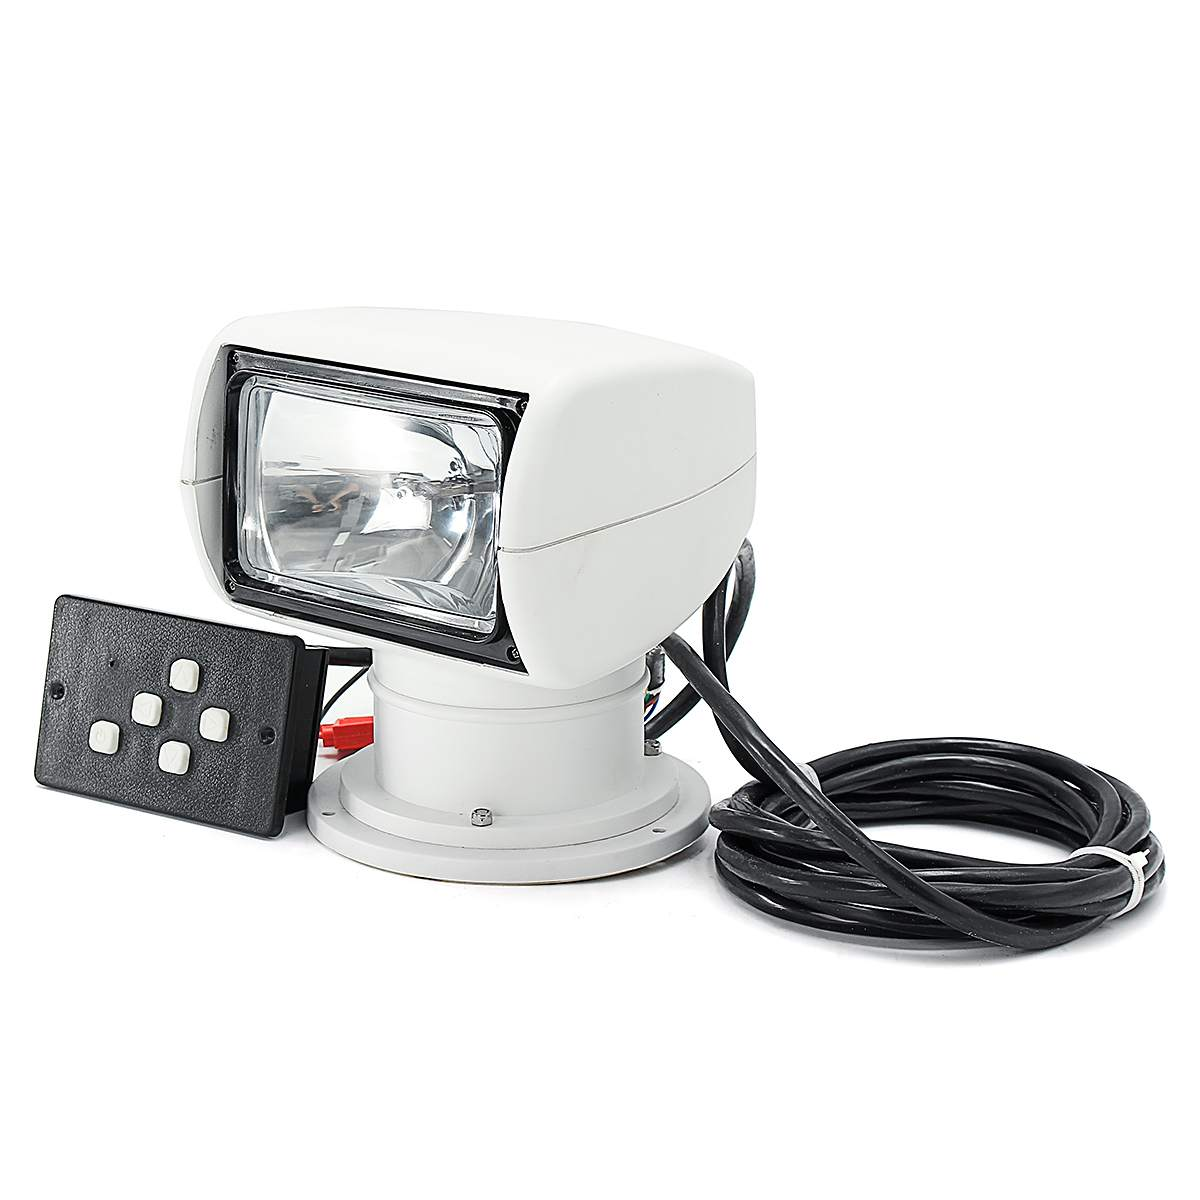 Smuxi Spotlight 12V Marine Boat Spotlight 2500LM 100W Remote Control White Searchlight Light PC+Aluminum Waterproof